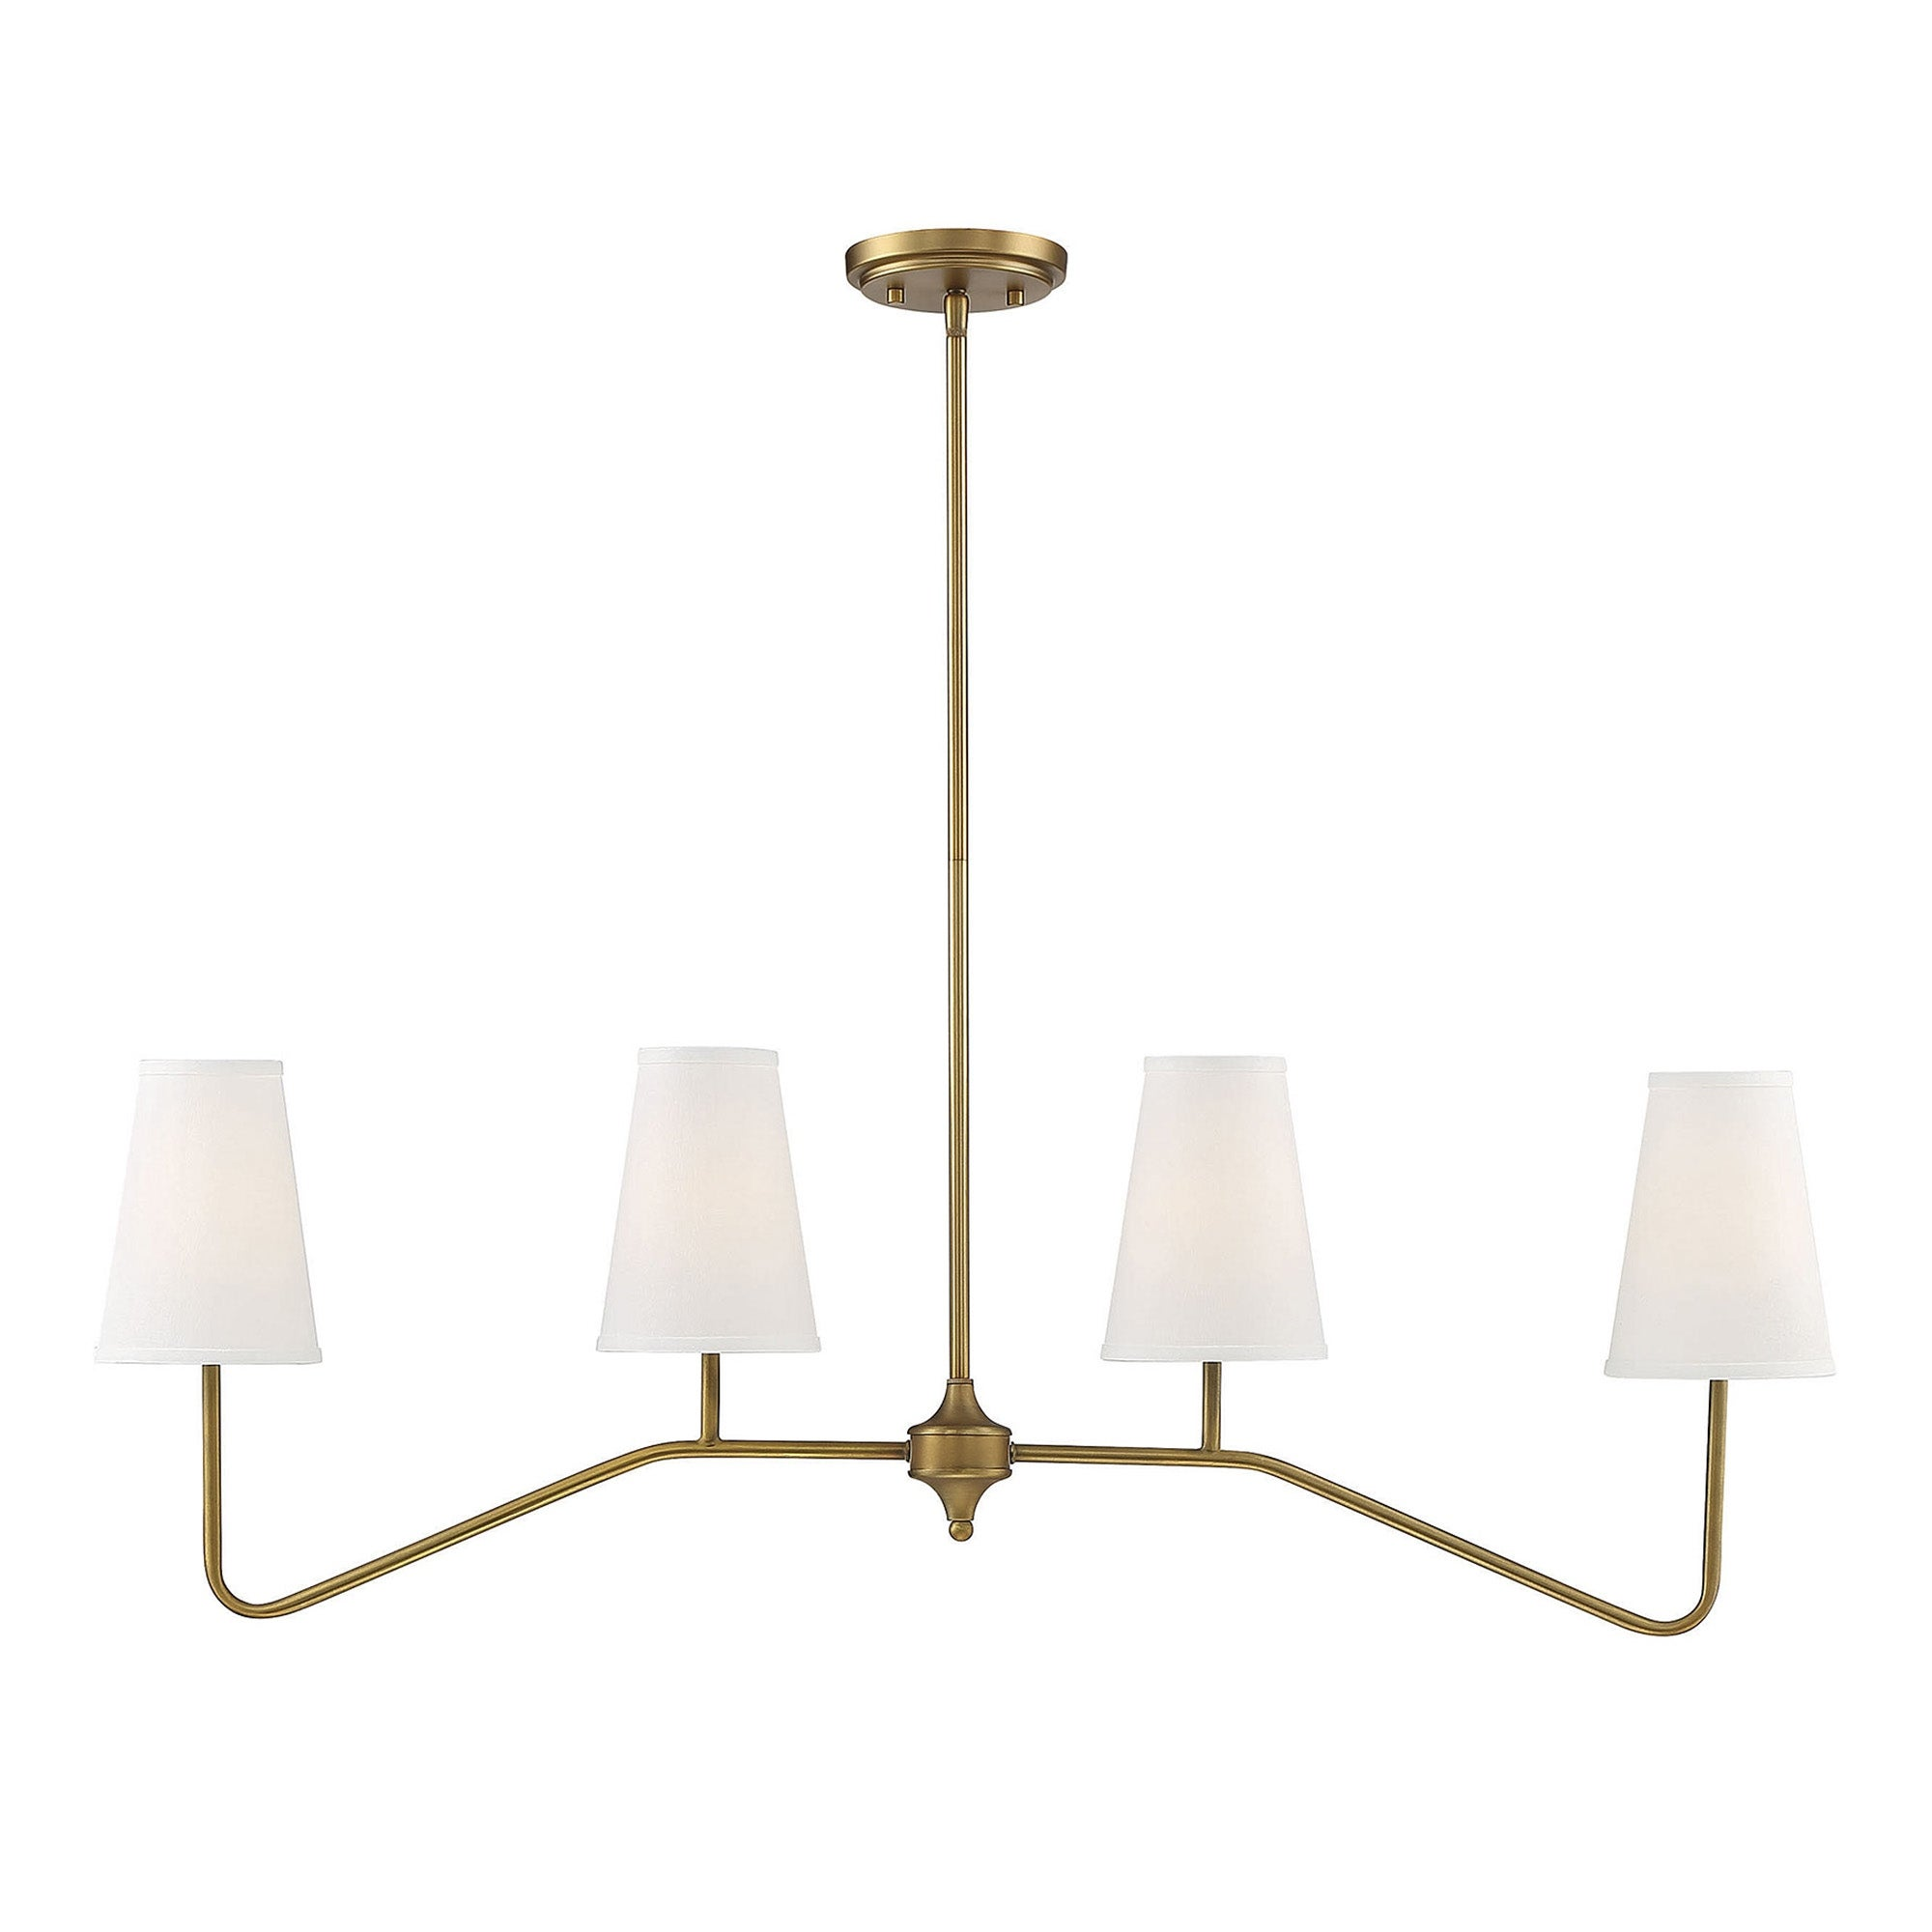 Savoy House4 Light Natural Brass Linear Chandelier Brushed Nickel As Is Item Brushed Nickel Dailymail